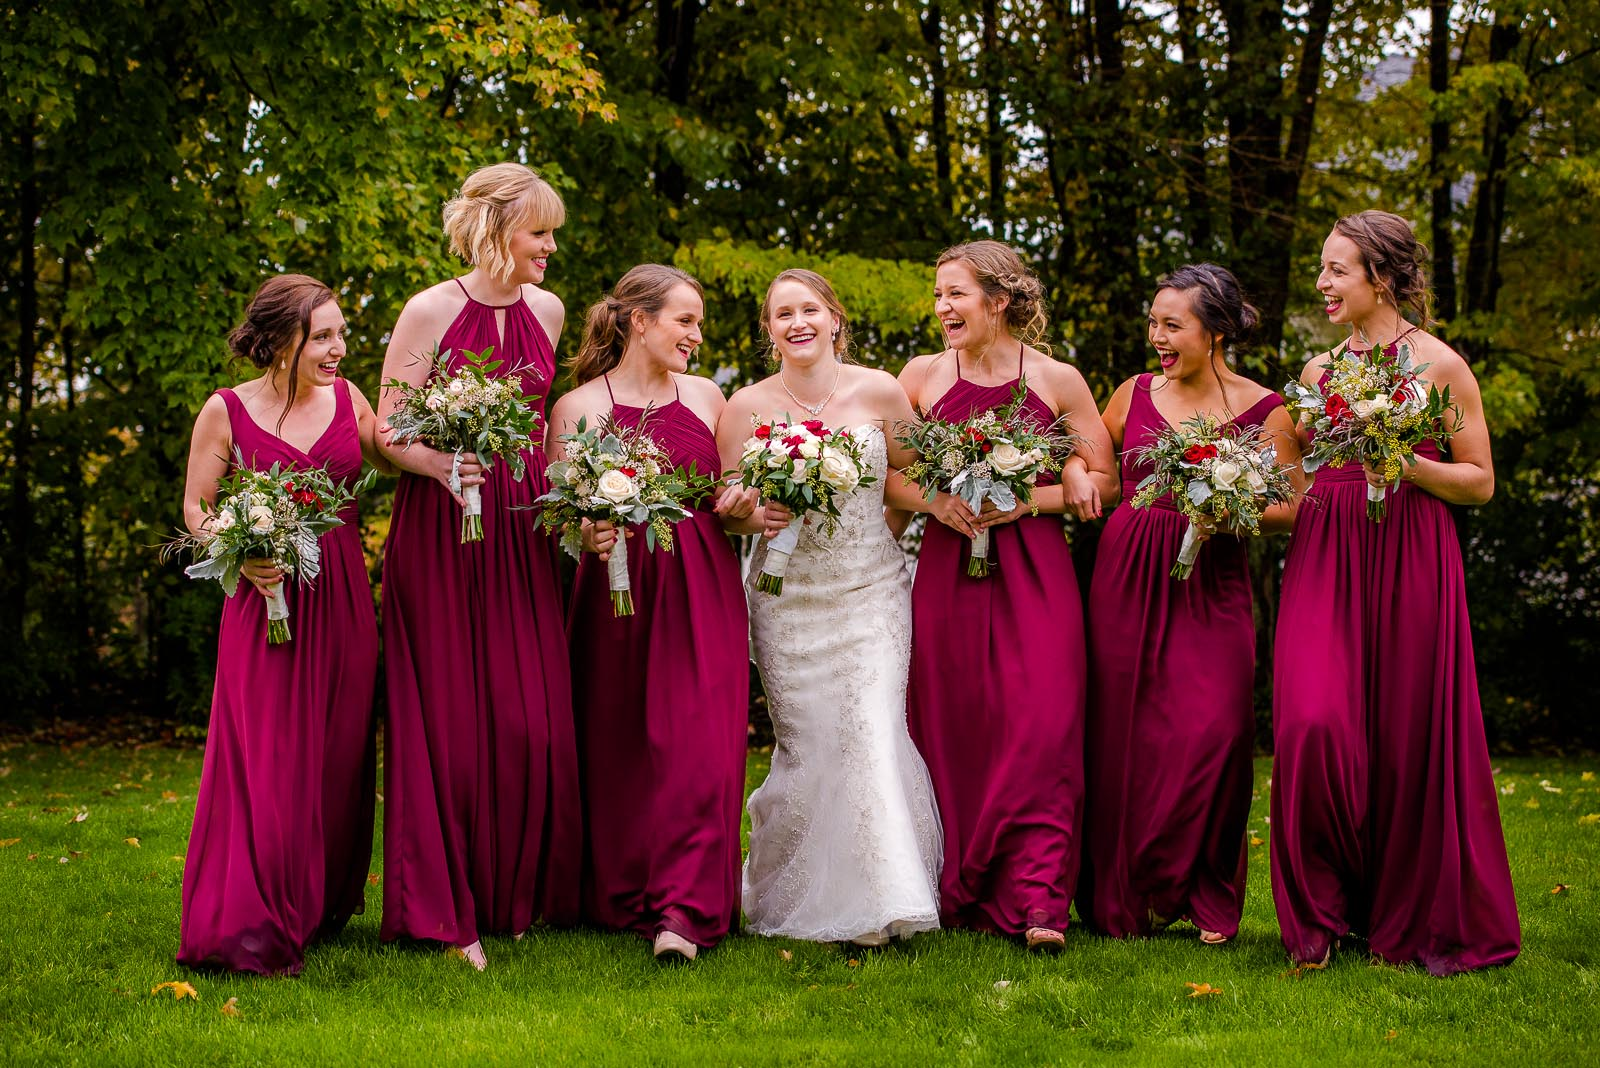 Eric_and_Christy_Photography_Blog_Wedding_Erica_Mike-27